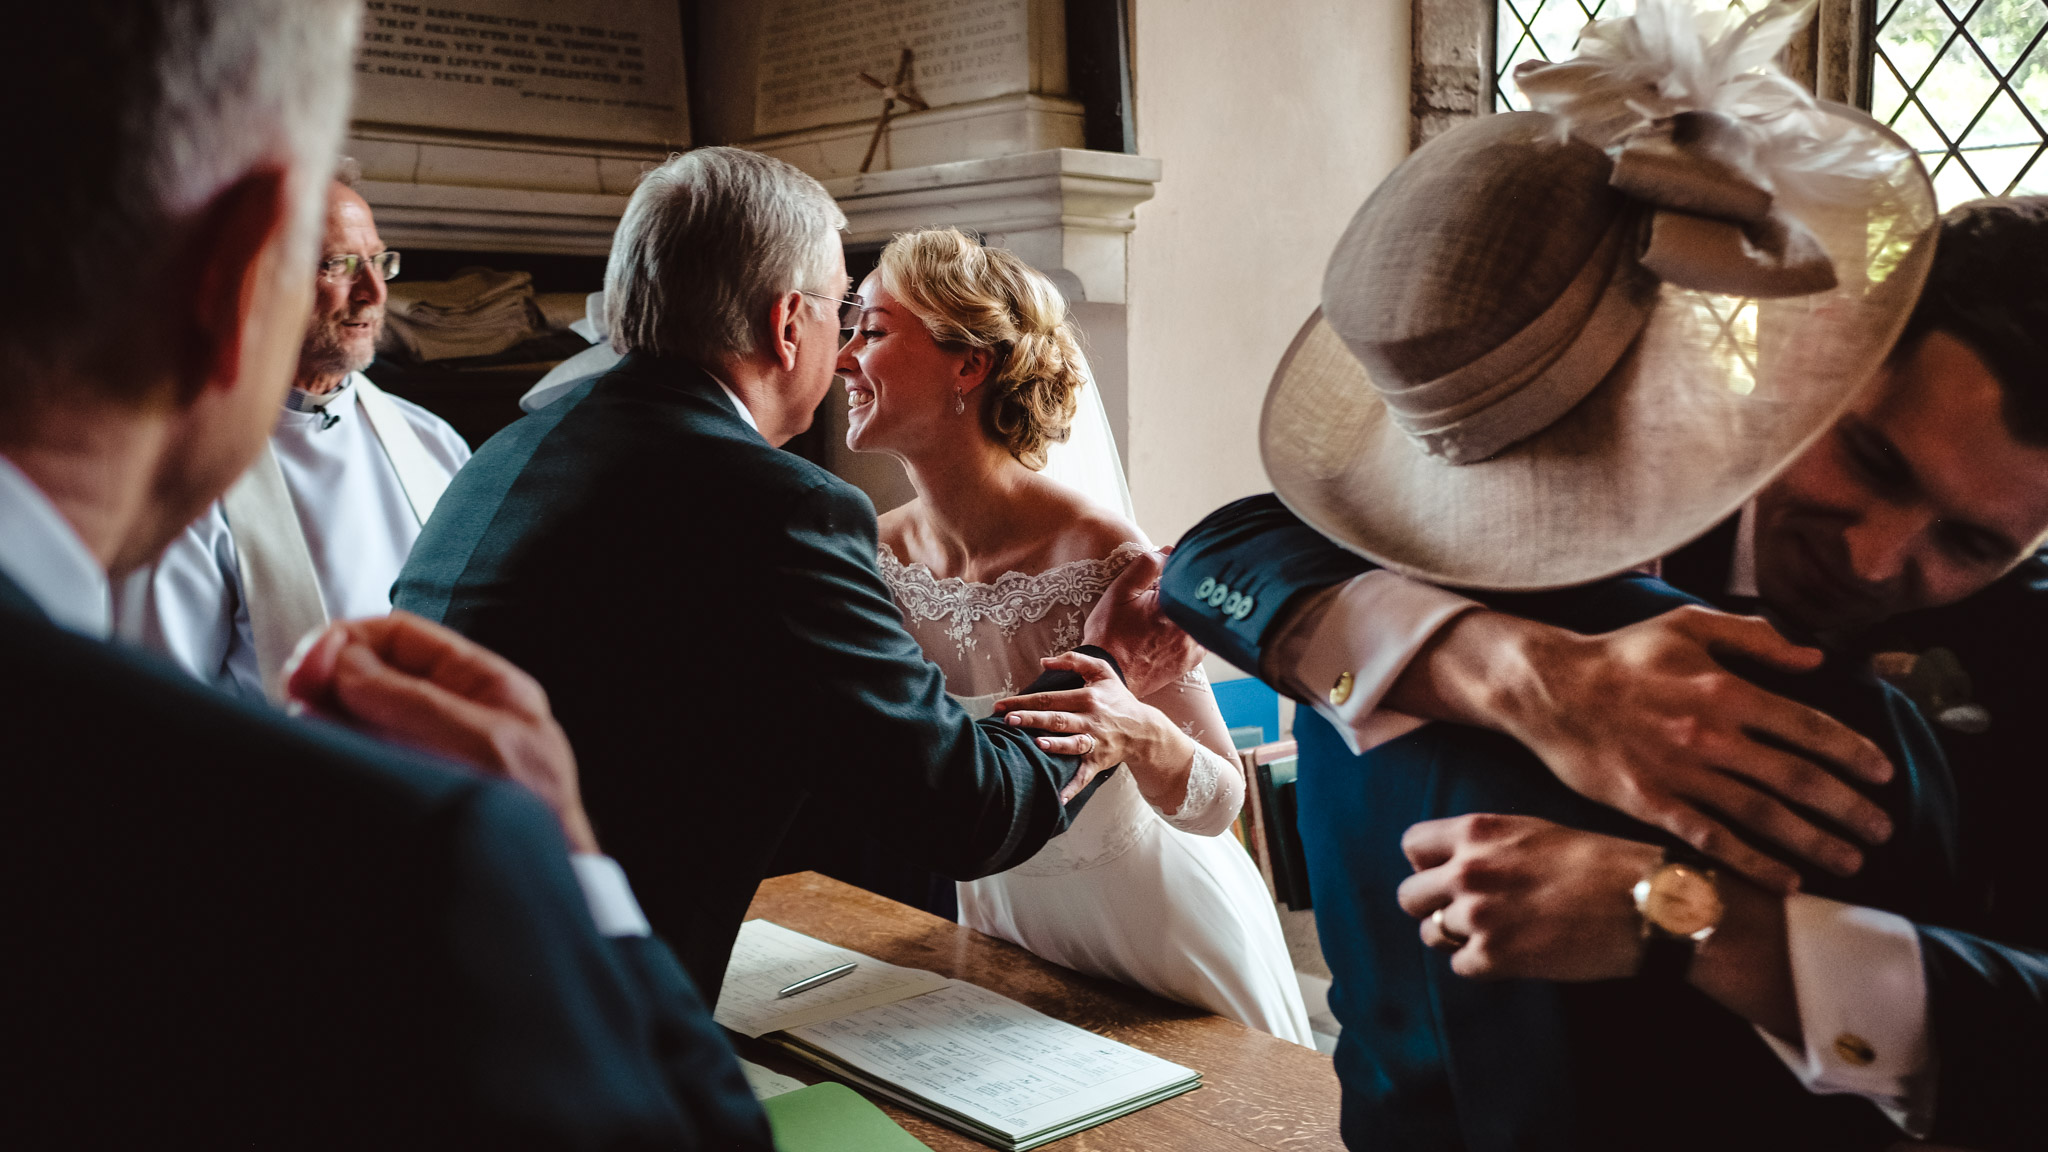 Hugs at signing of marriage documents - photo by Andrew Billington Photography